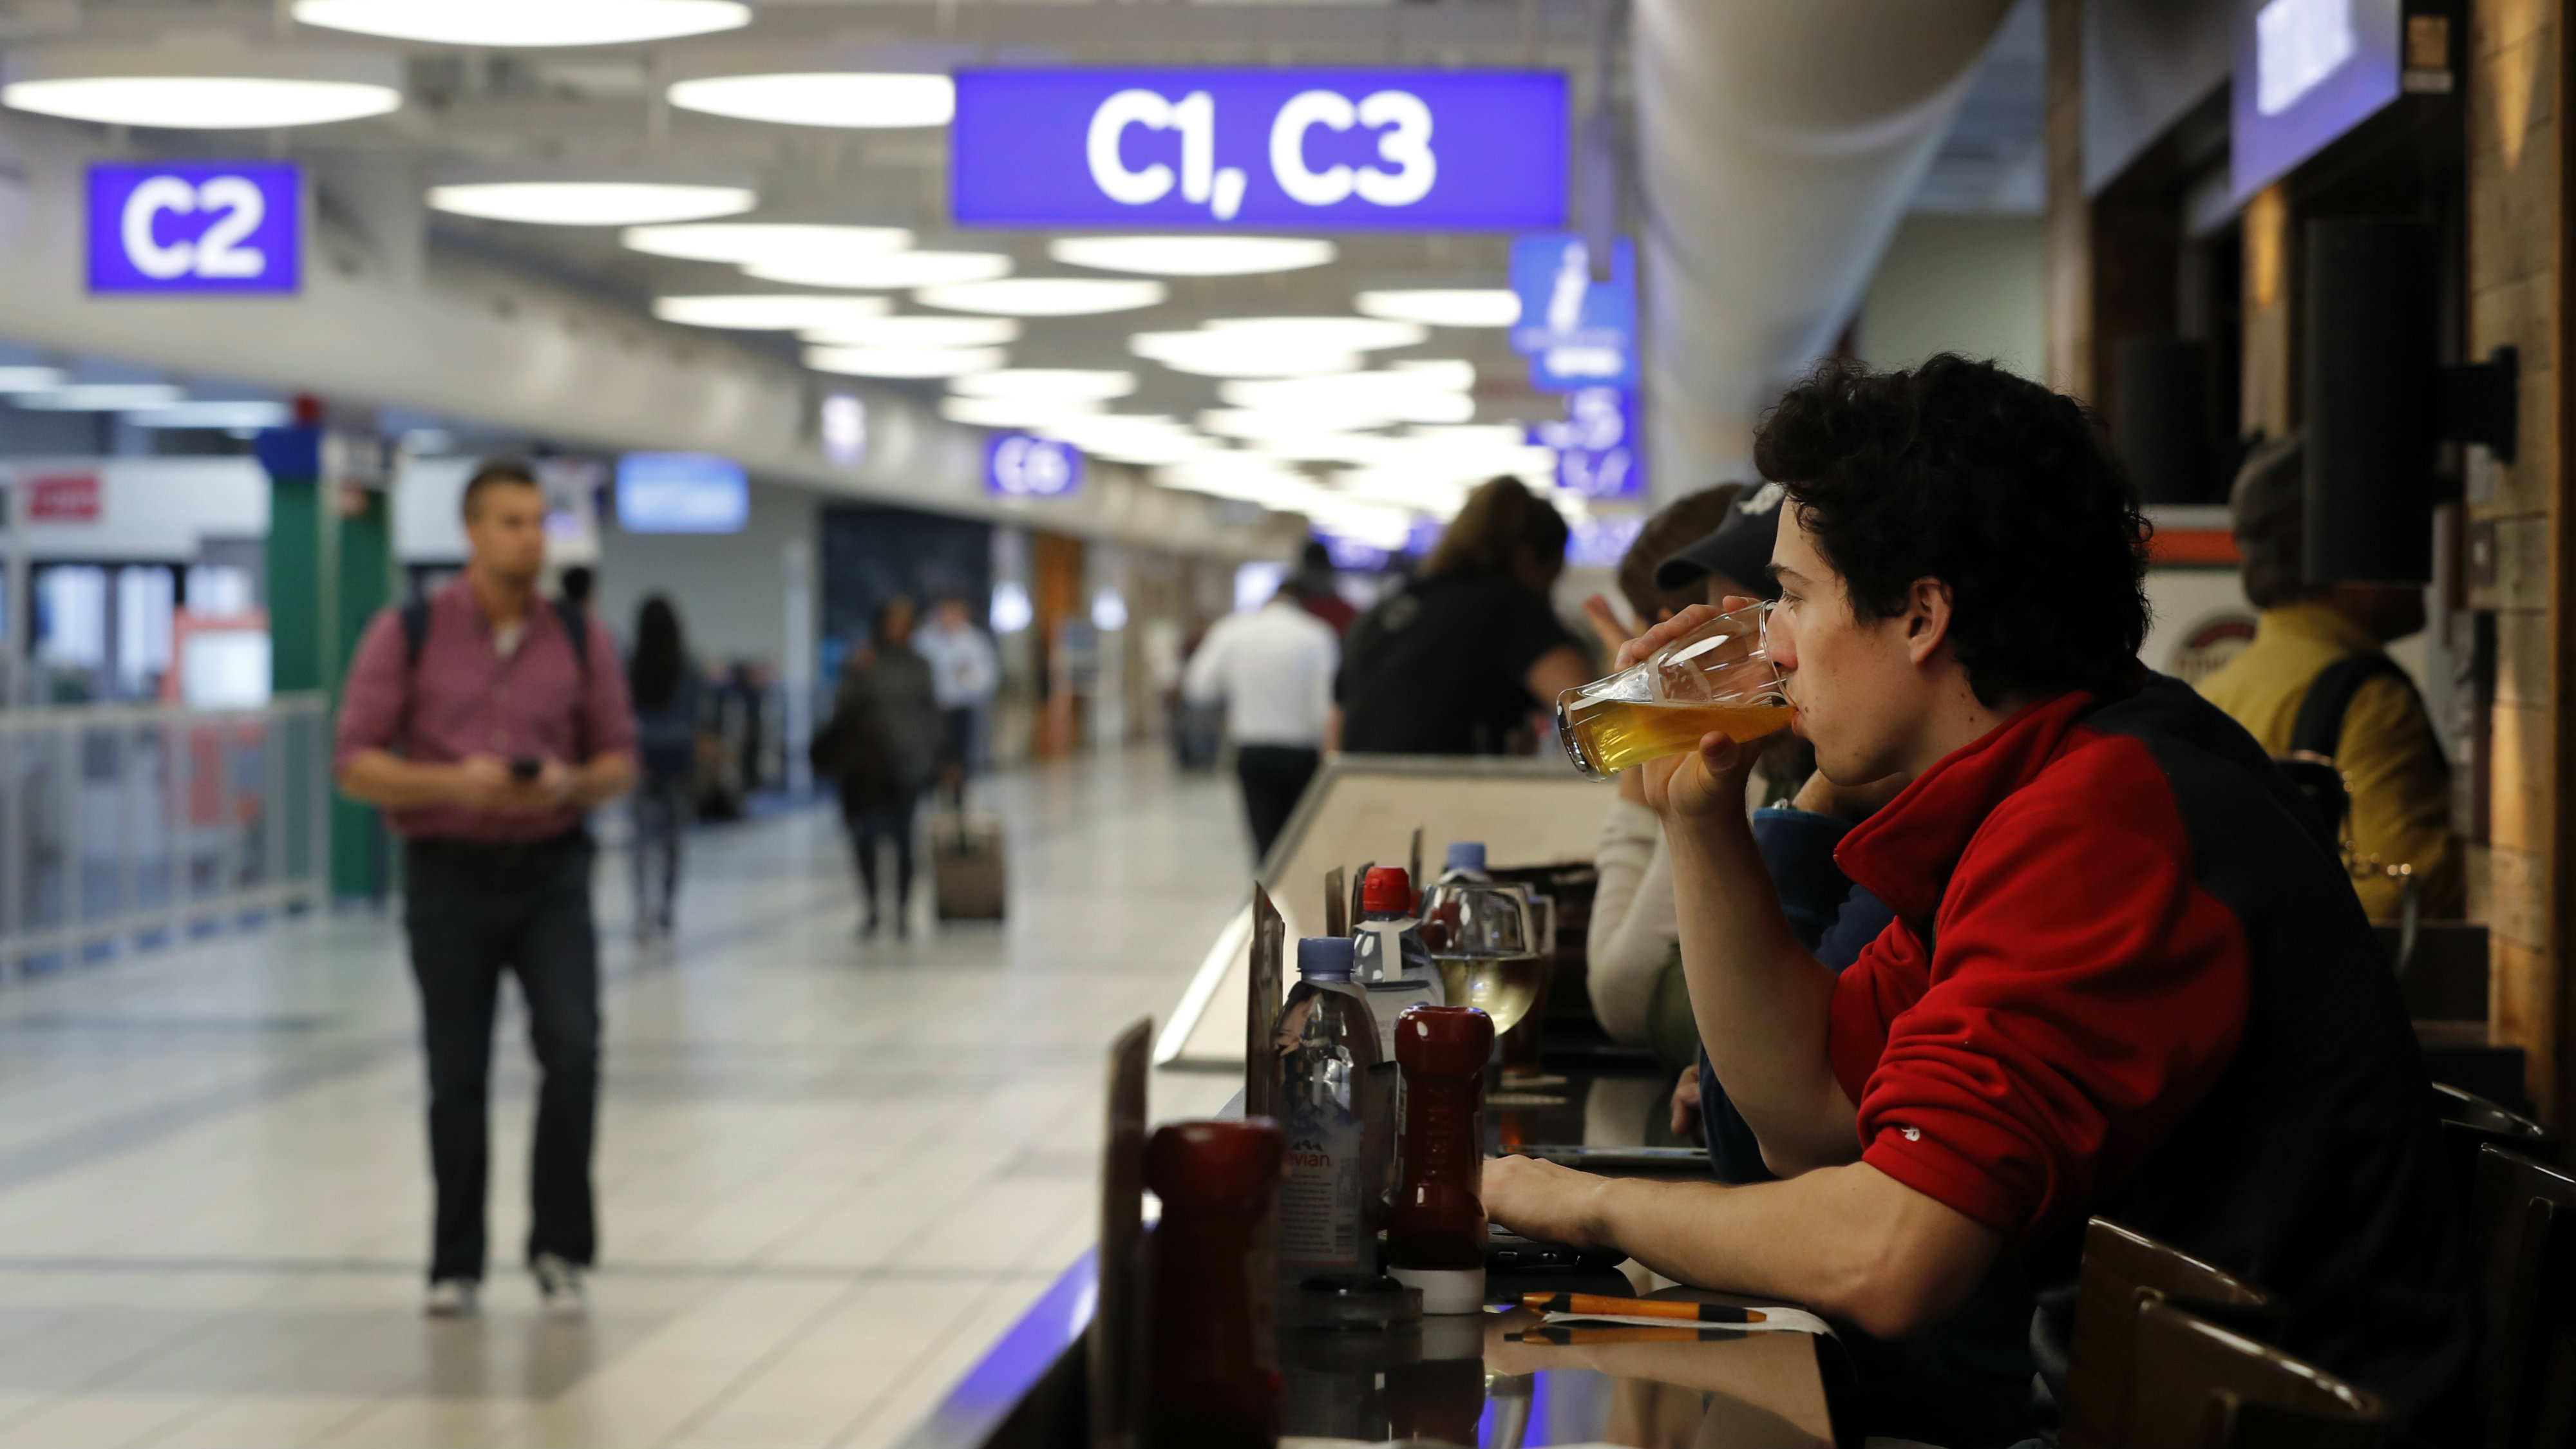 Man drinking a pint in an airport